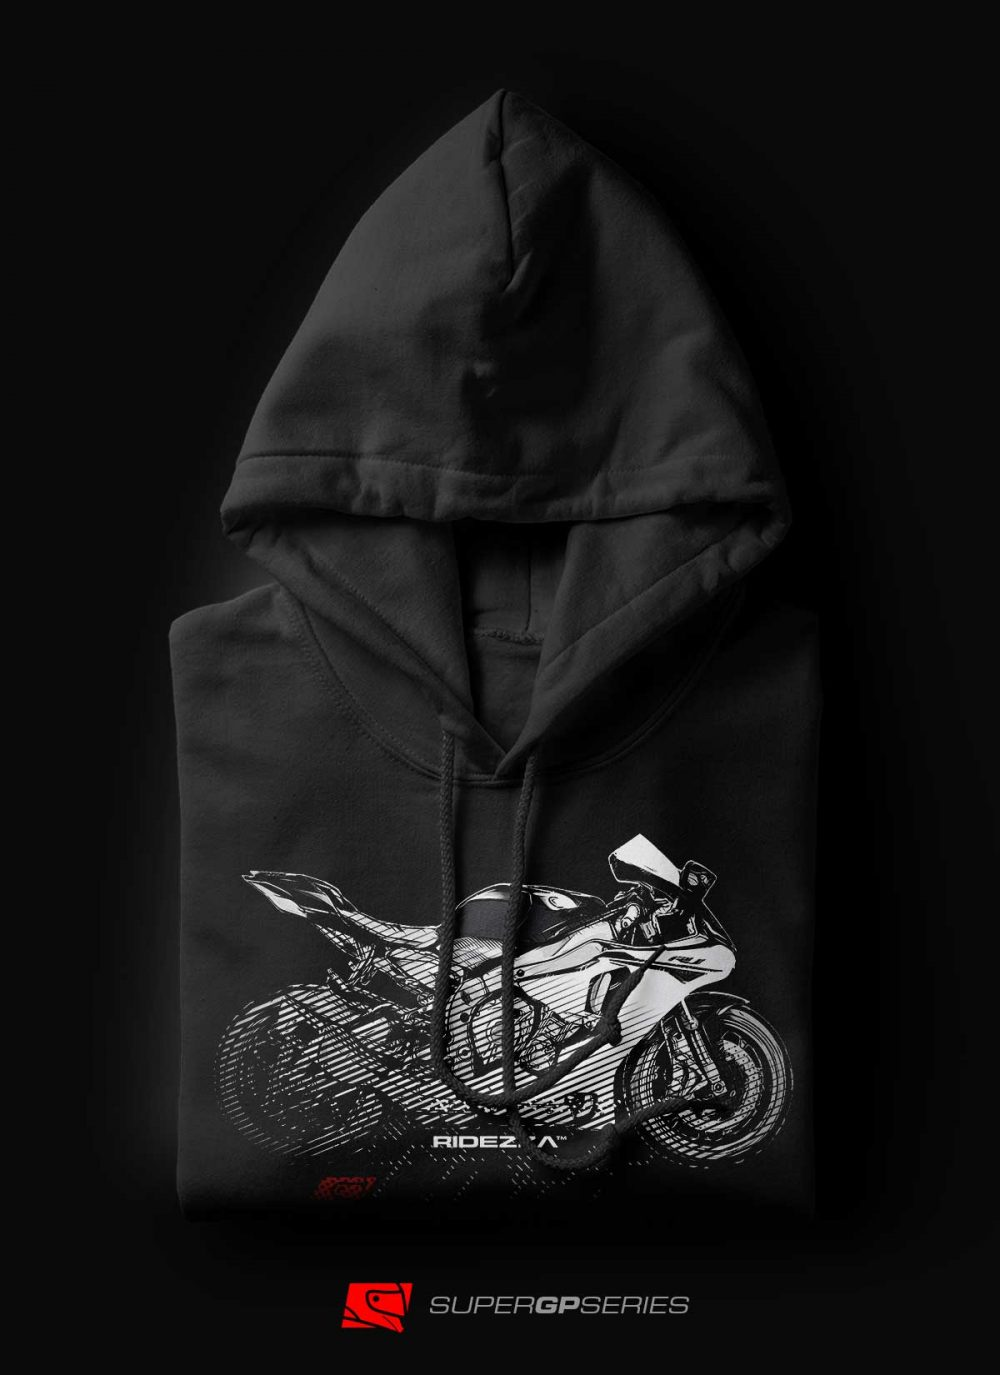 Ridezza YZF-R1 SuperGP Series [New Model] Hoodie